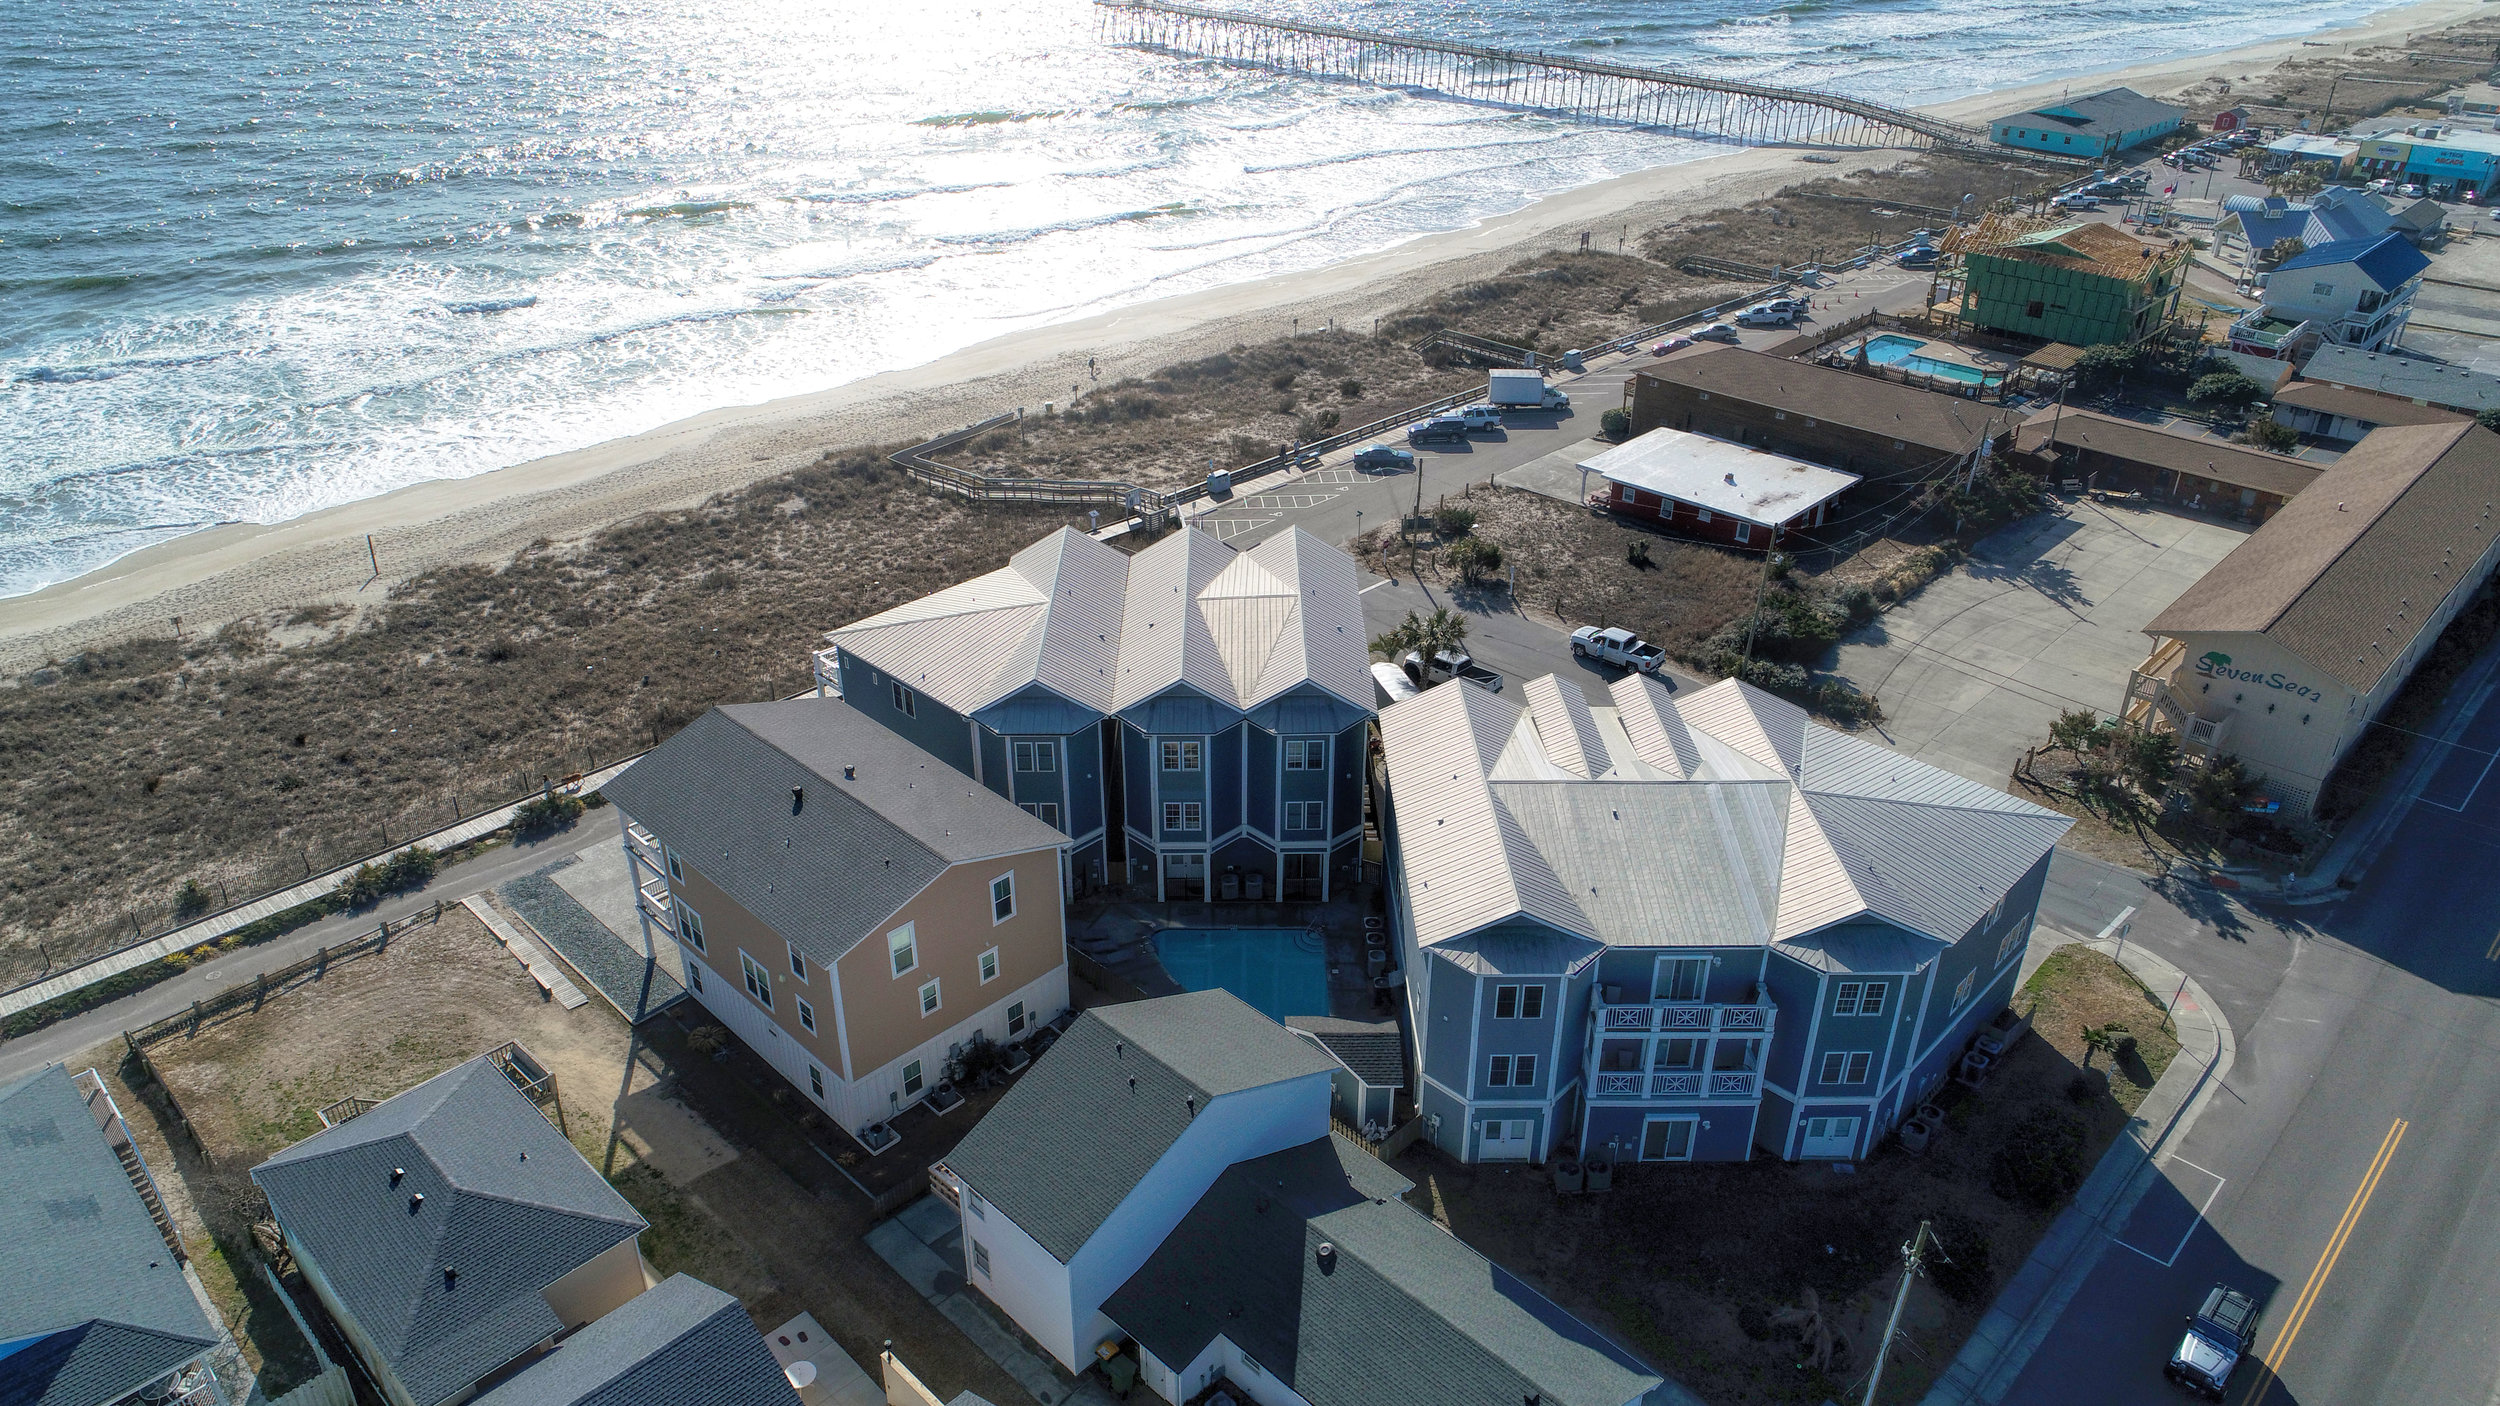 202 N Fort Fisher Blvd Unit 8-print-041-49-Kure Beach Villas drone view-4200x2363-300dpi.jpg